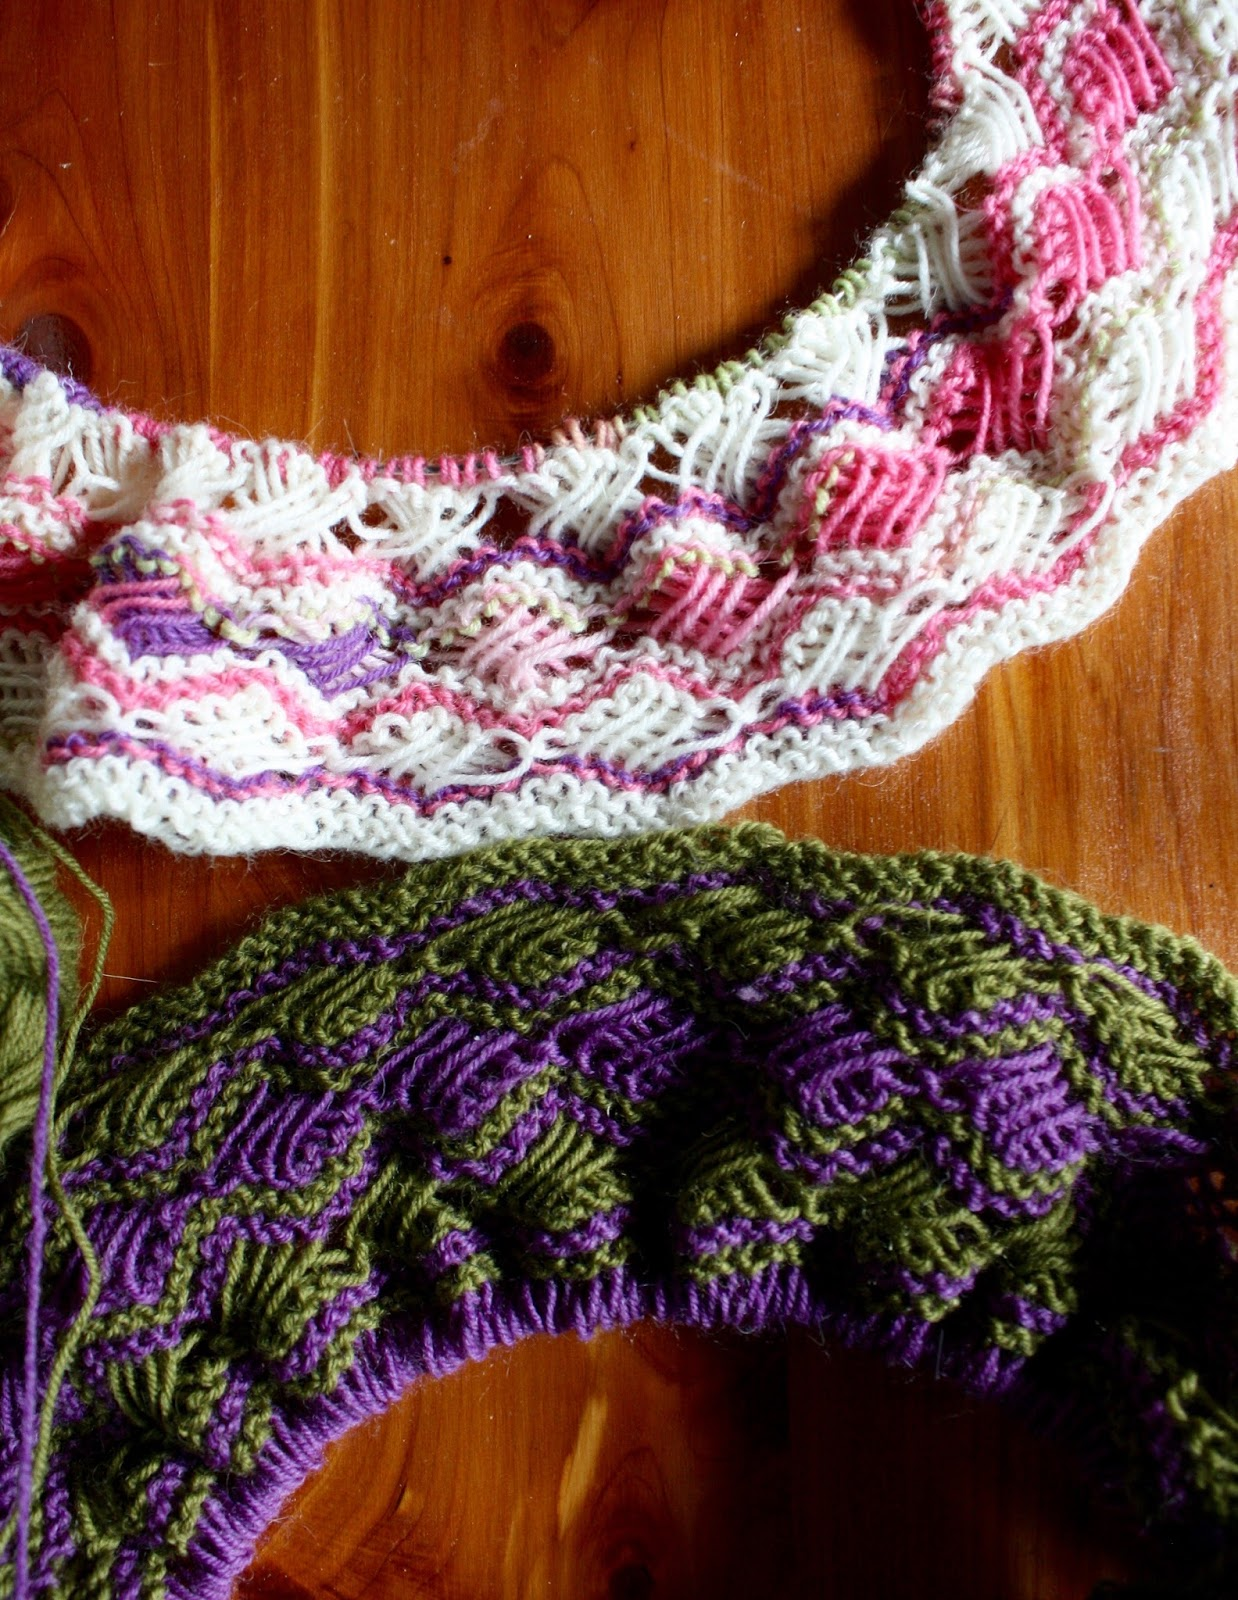 Cross Stitch Knitting Pattern Scarf : QueerJoes Knitting Blog: 08/01/2016 - 09/01/2016